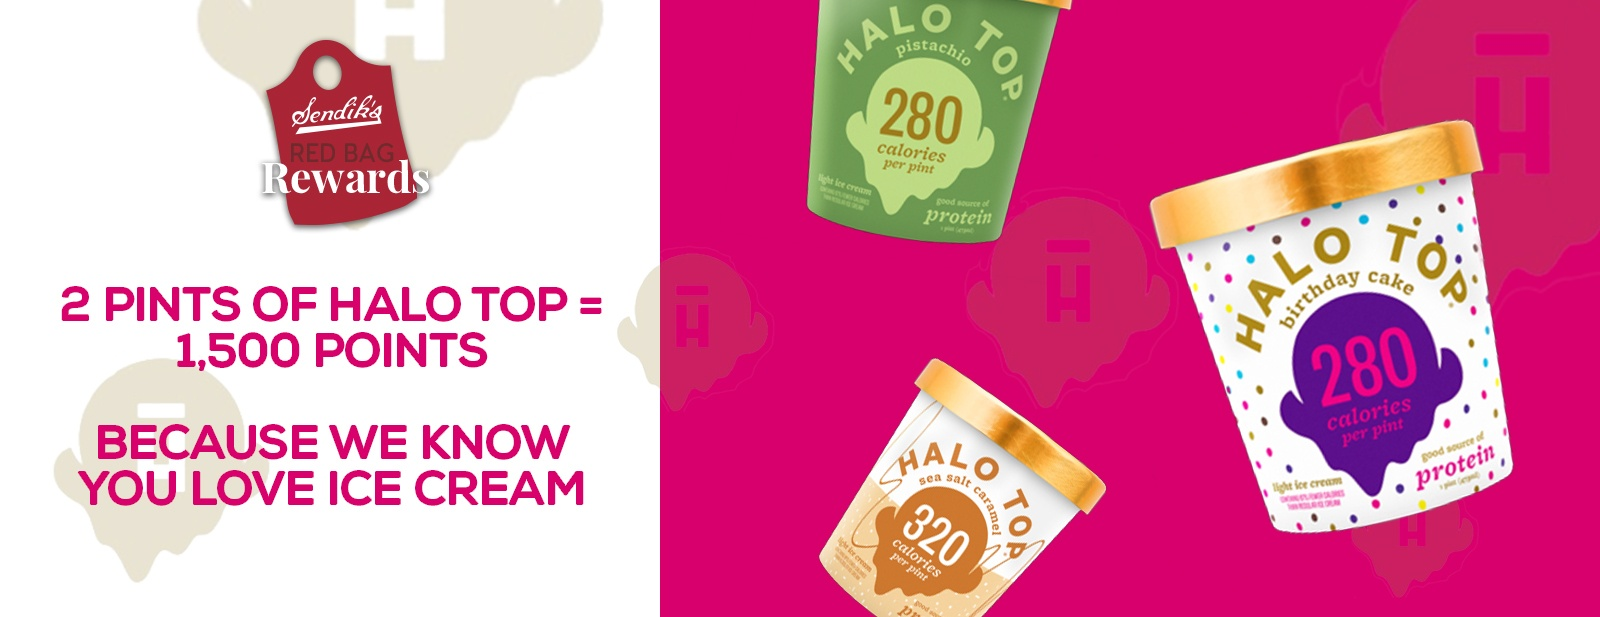 2 Pints of Halo Top = 1,500 Red Bag Rewards Points